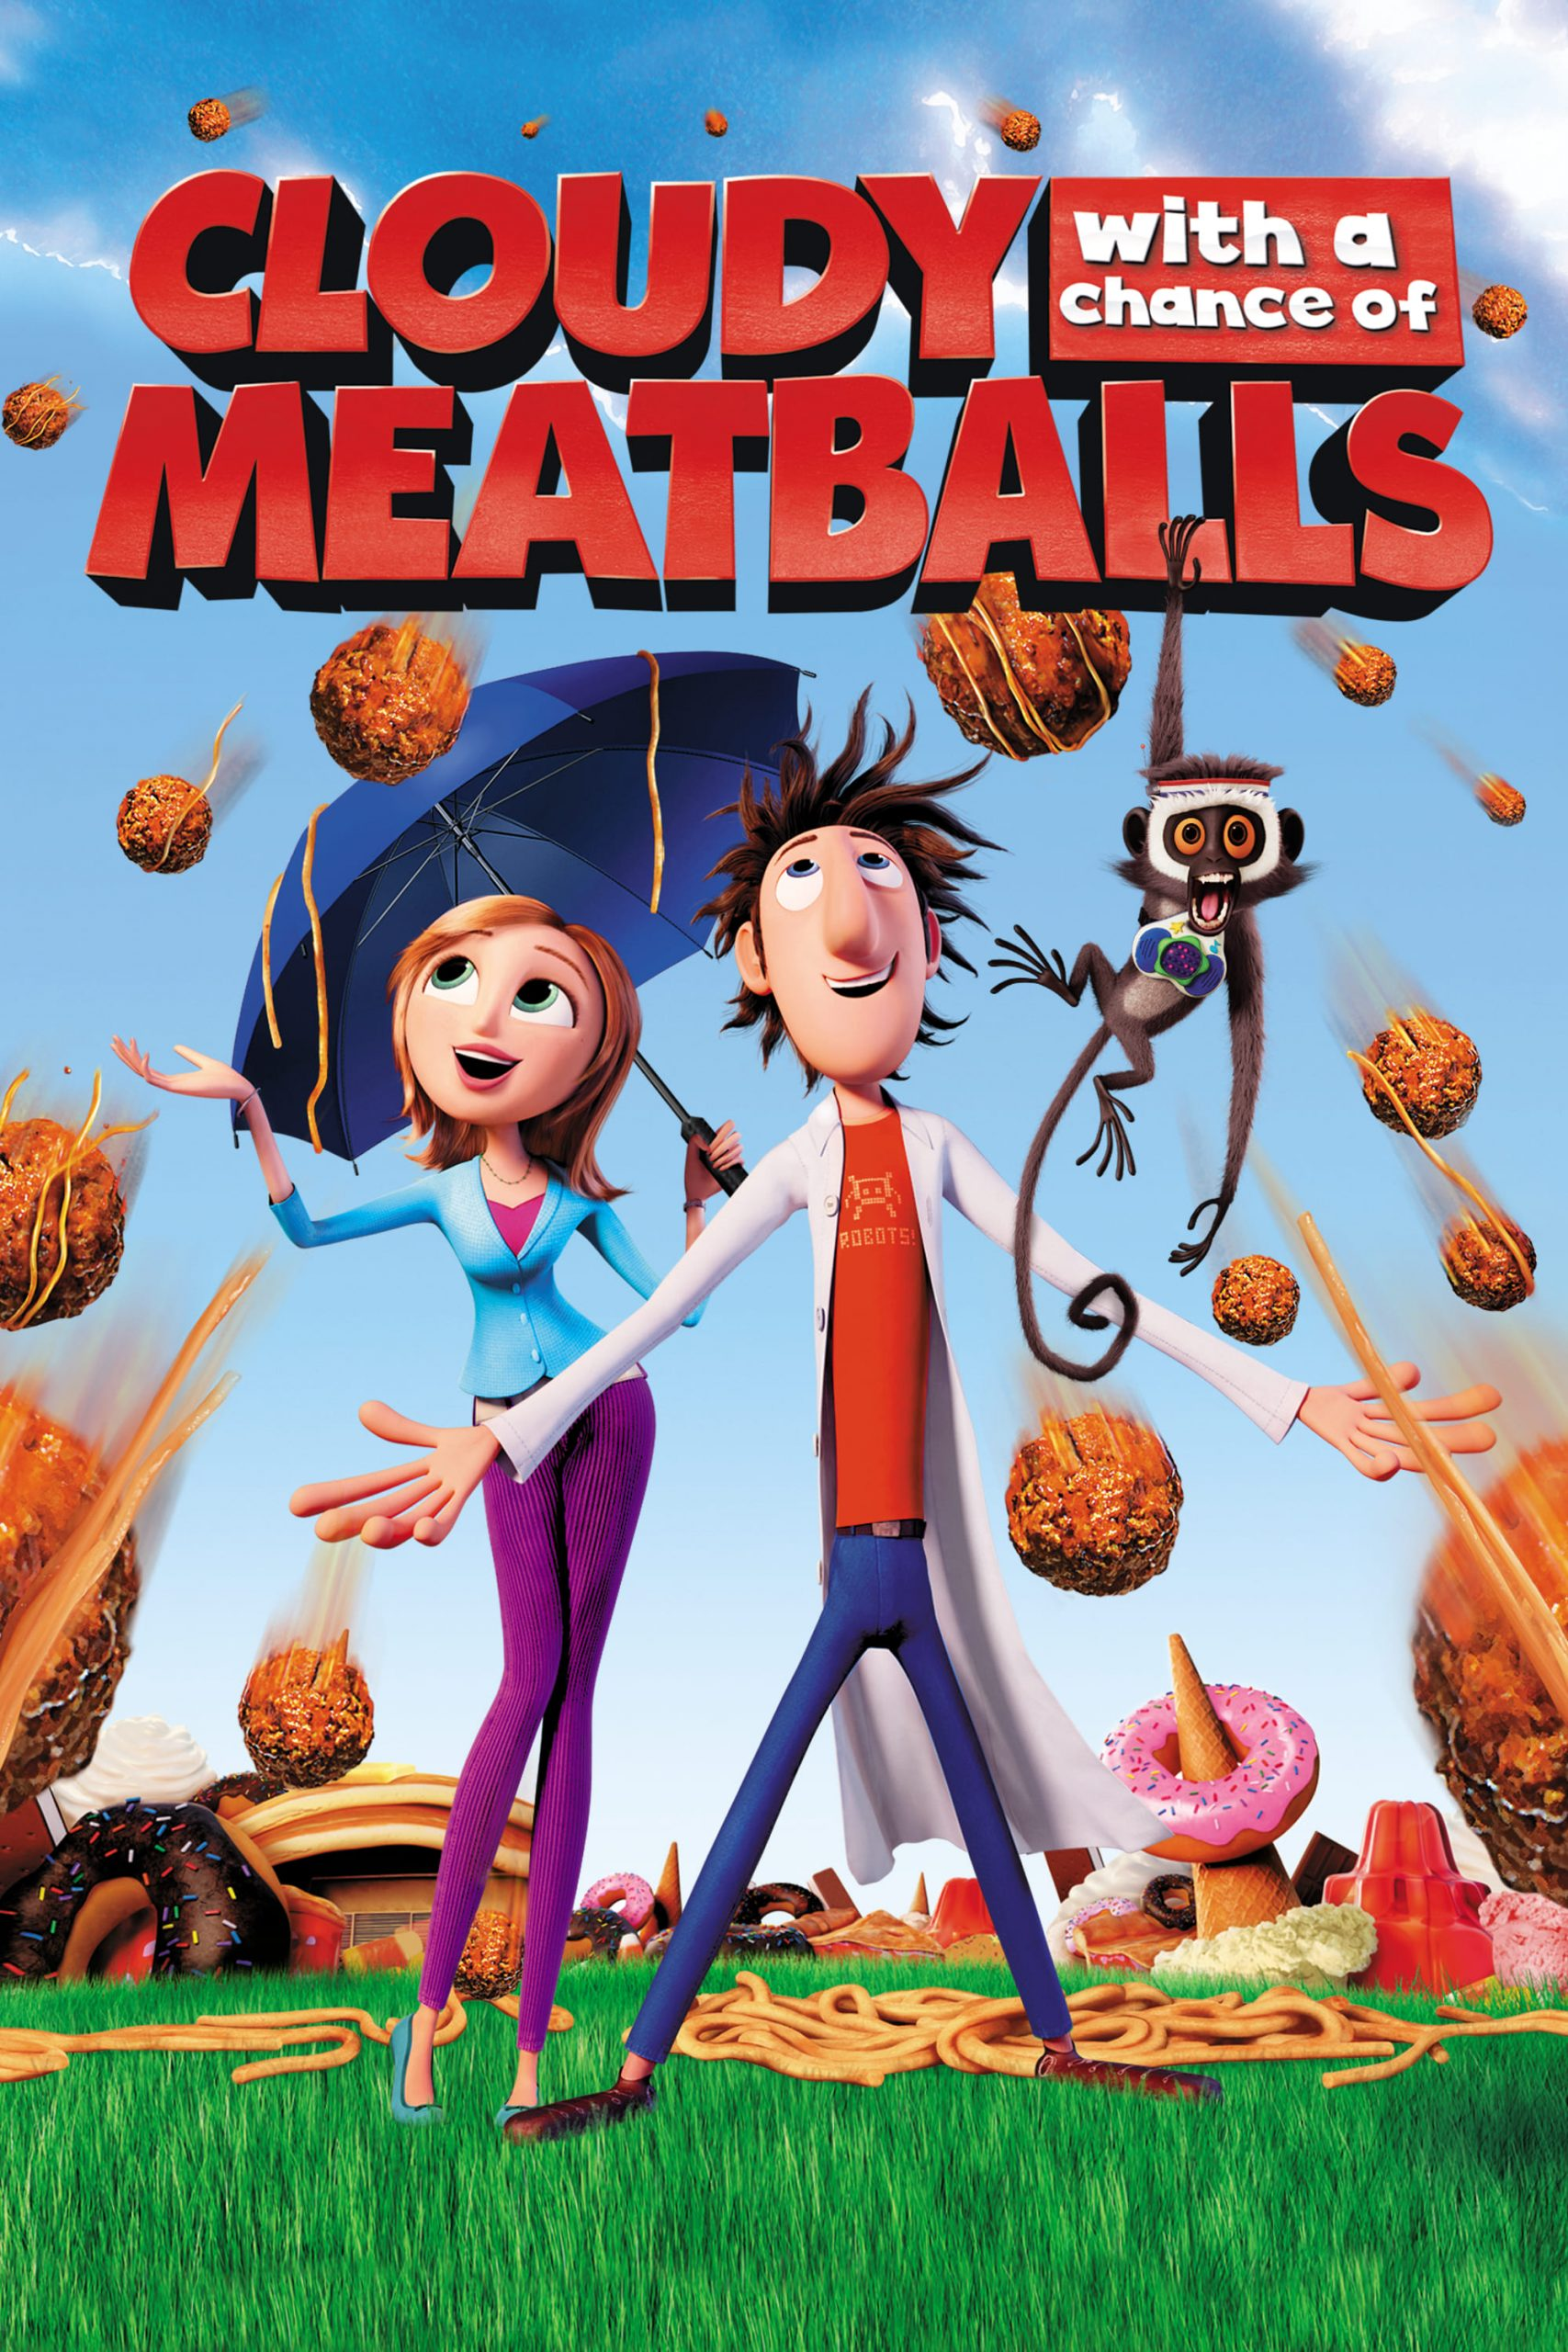 Poster for Cloudy with a Chance of Meatballs